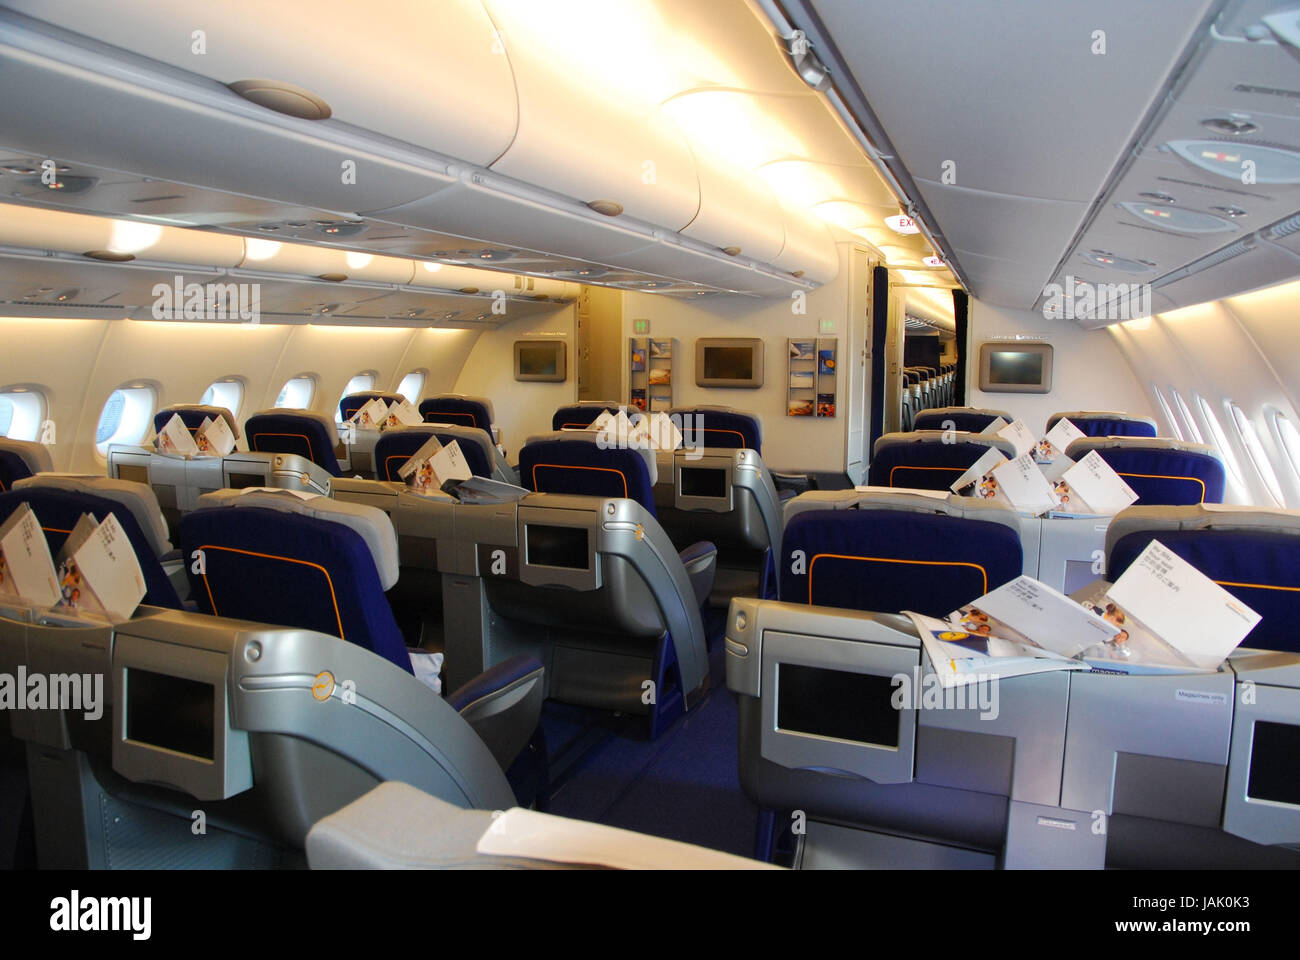 civil aviation lufthansa airbus a380 cabin rows business class stock photo 144247127 alamy. Black Bedroom Furniture Sets. Home Design Ideas